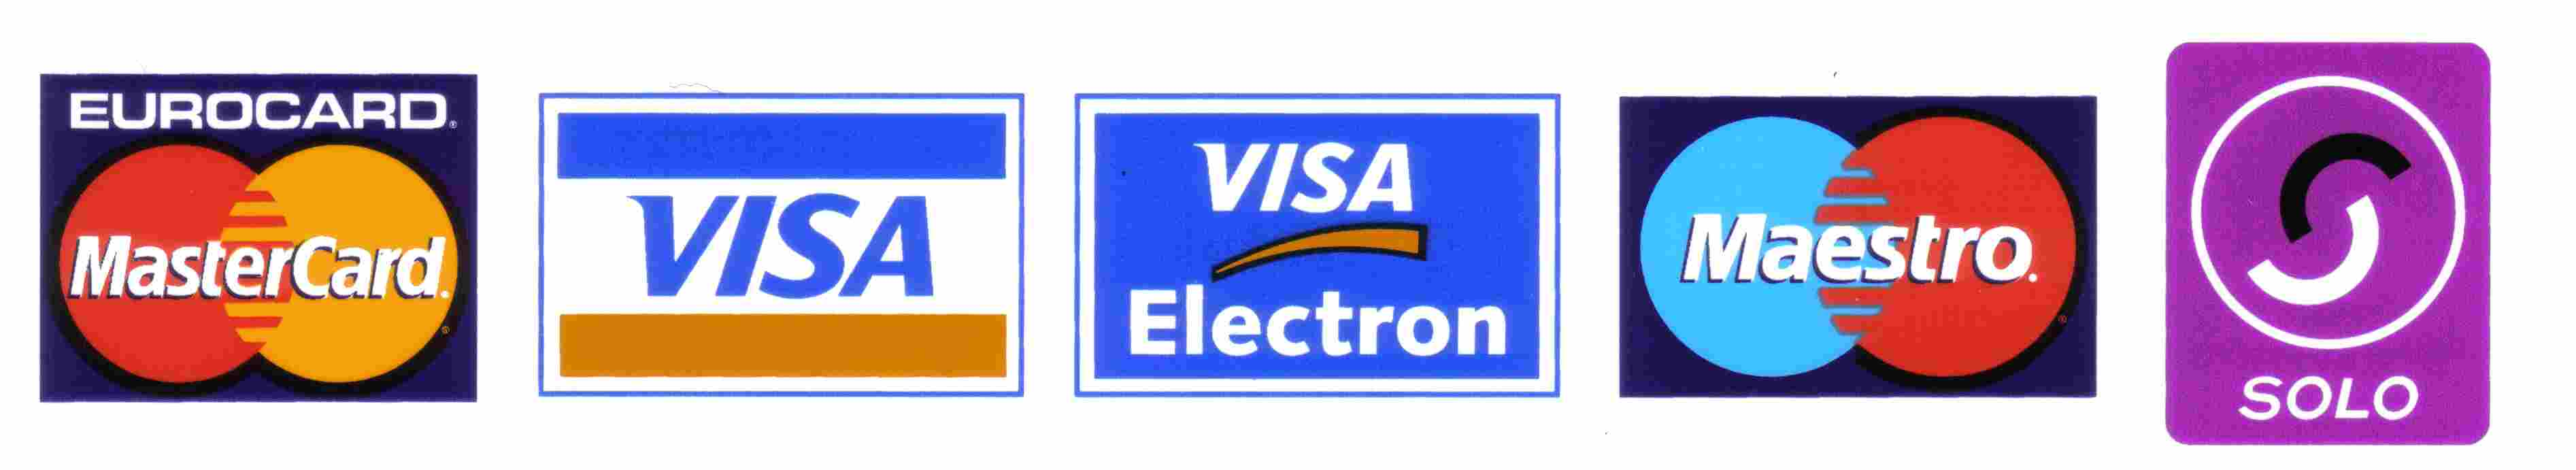 credit-card-logos-web.jpg